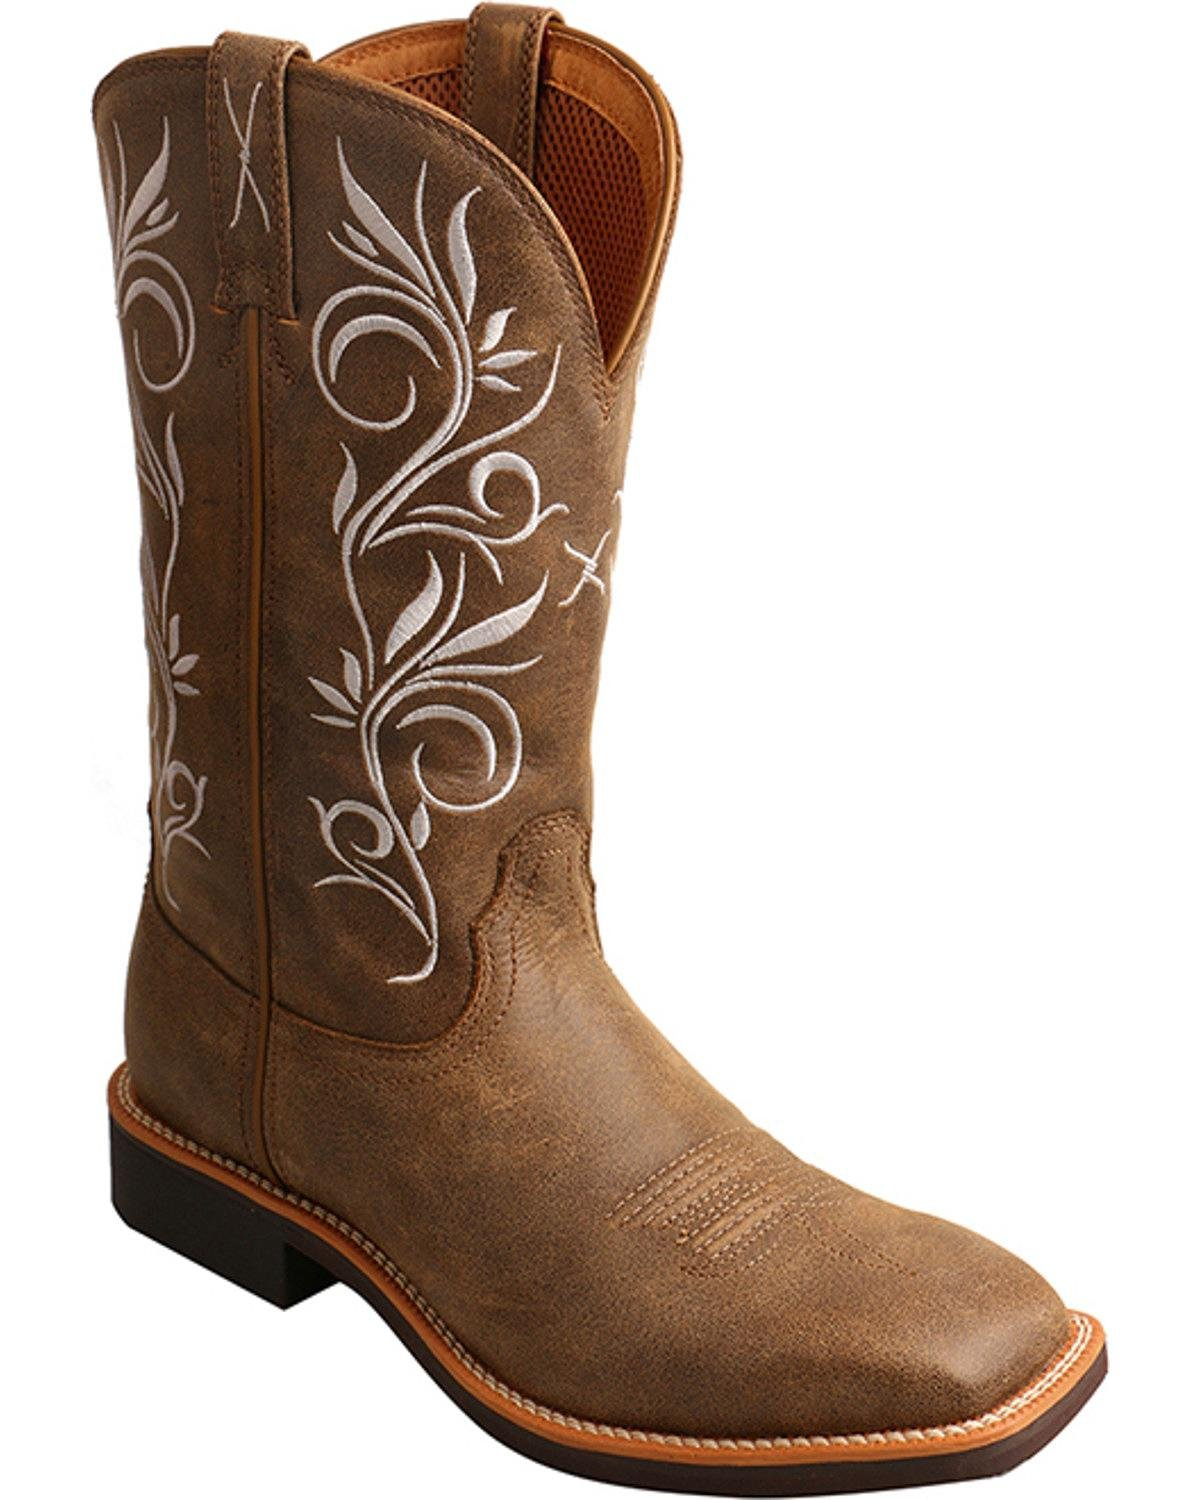 Twisted X Women's Top Hand Boot Square Toe - Wth0012 B06X9HR5VH 9 B(M) US|Bomber